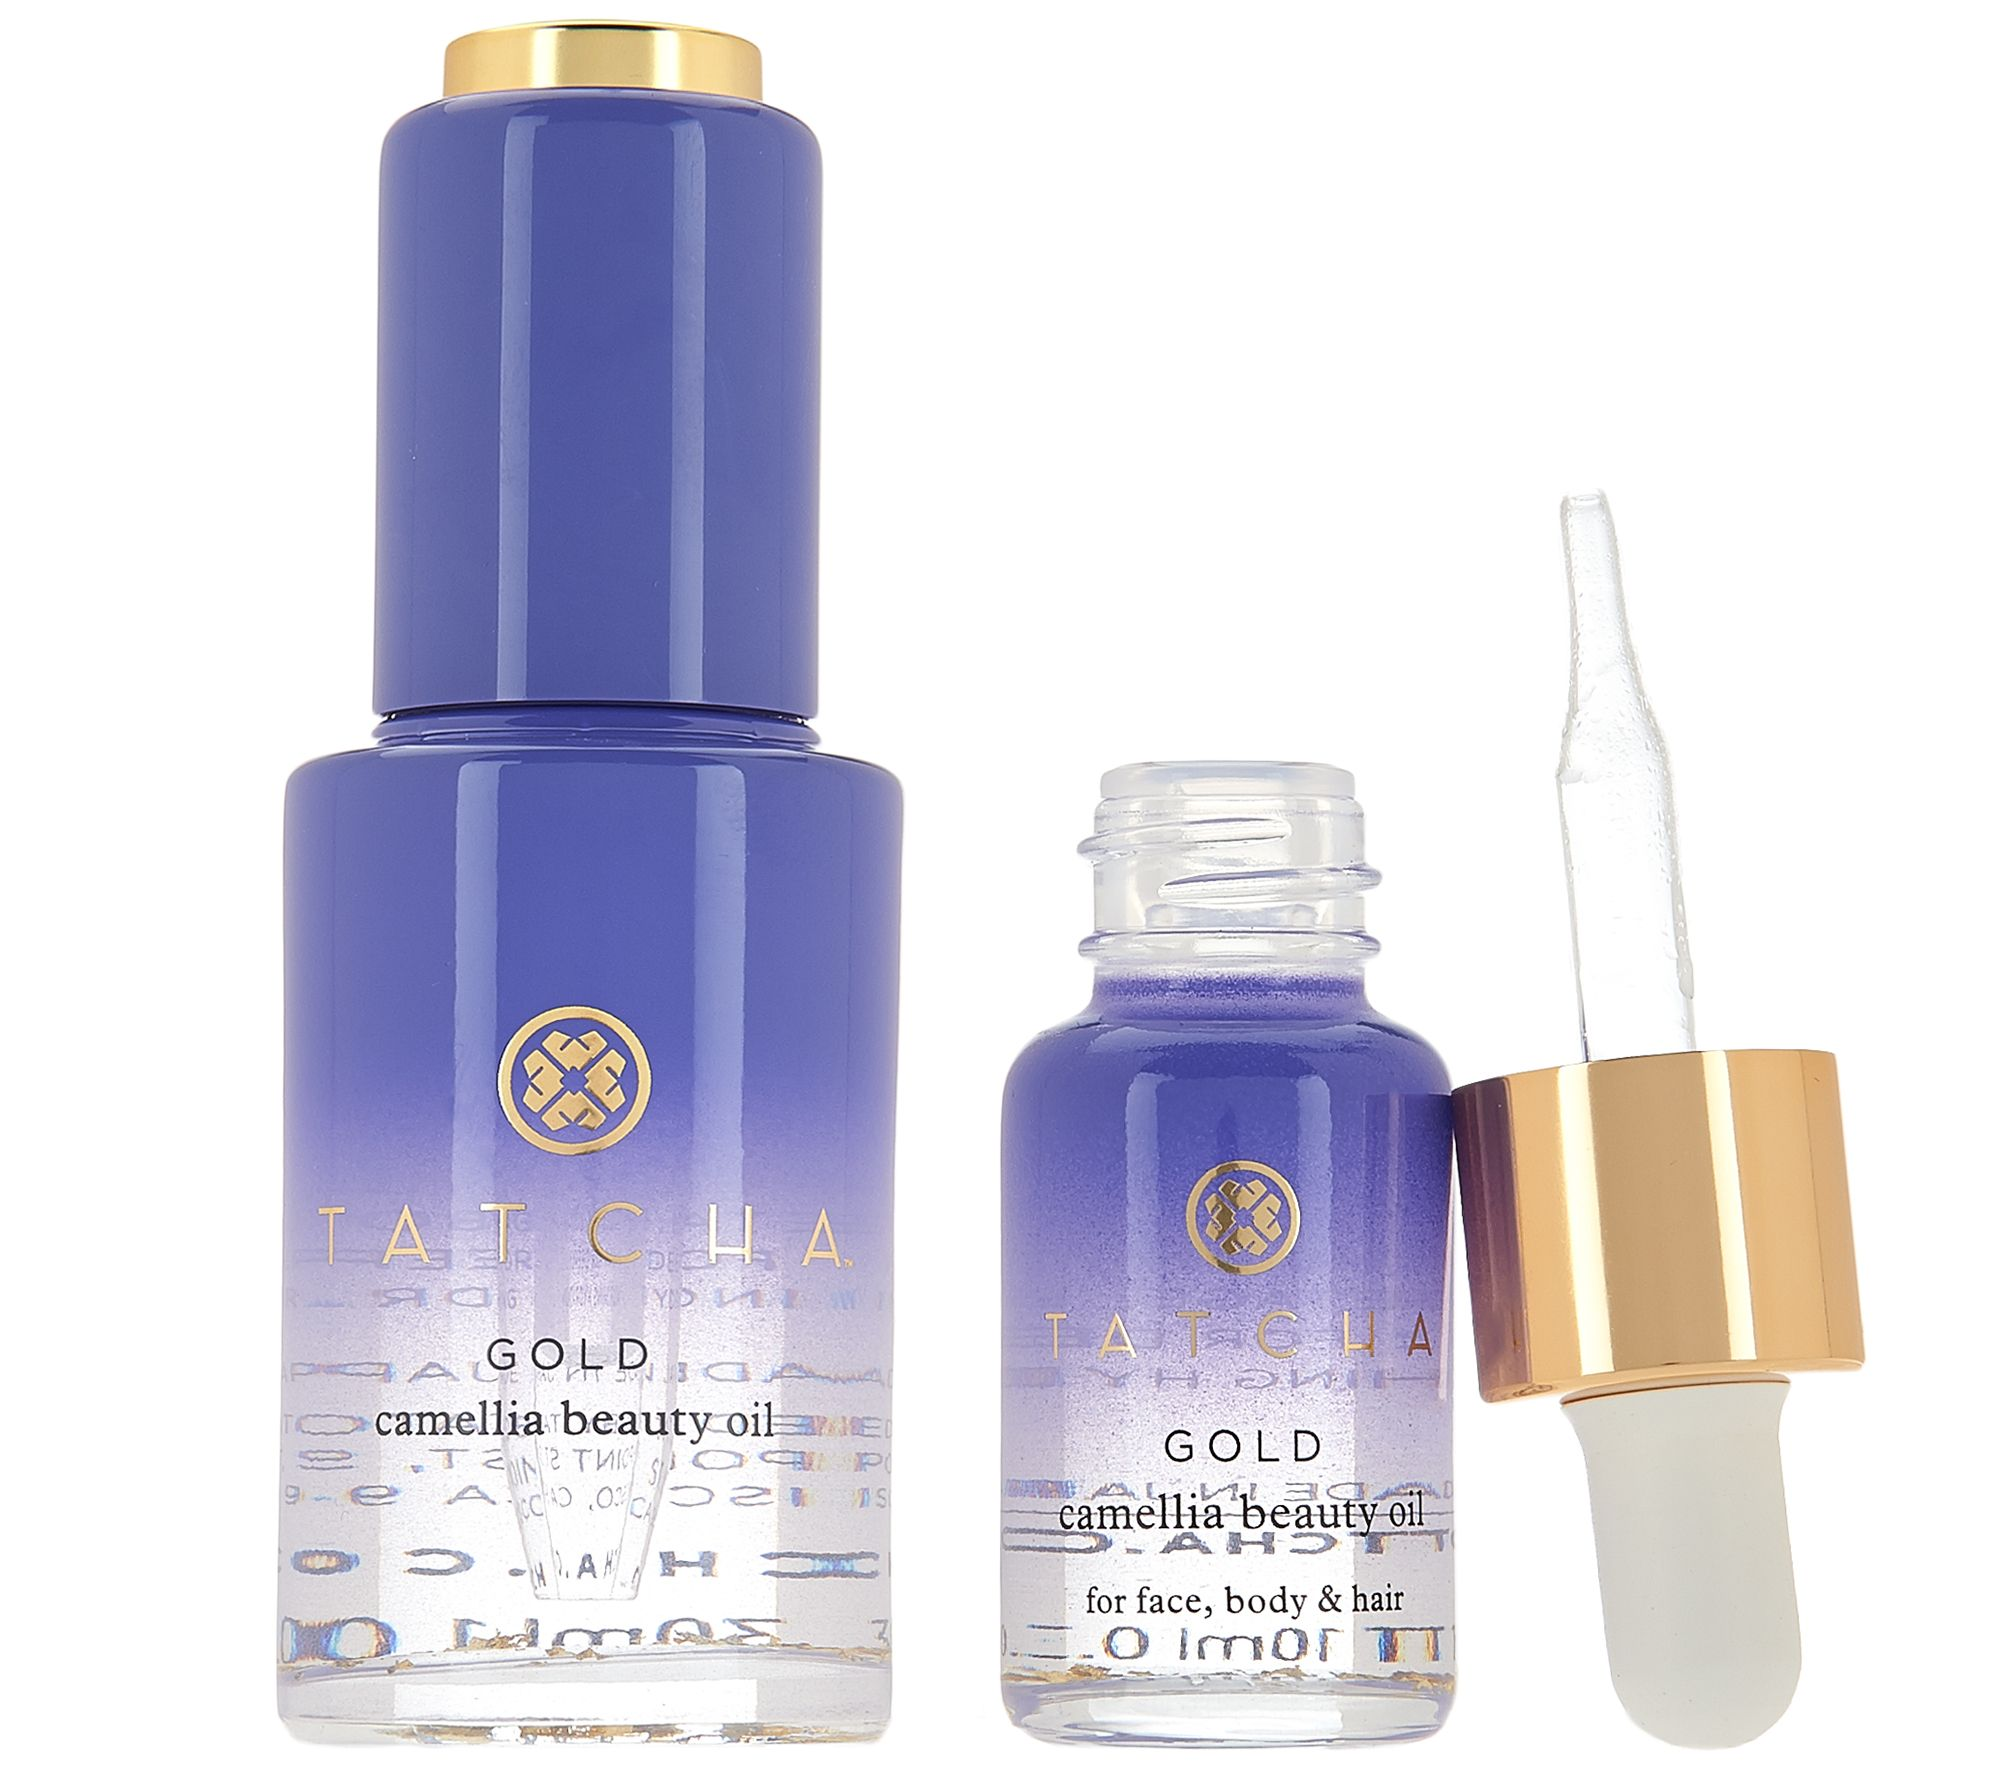 Tatcha Camellia Beauty Oil Home Amp Away Auto Delivery Qvc Com